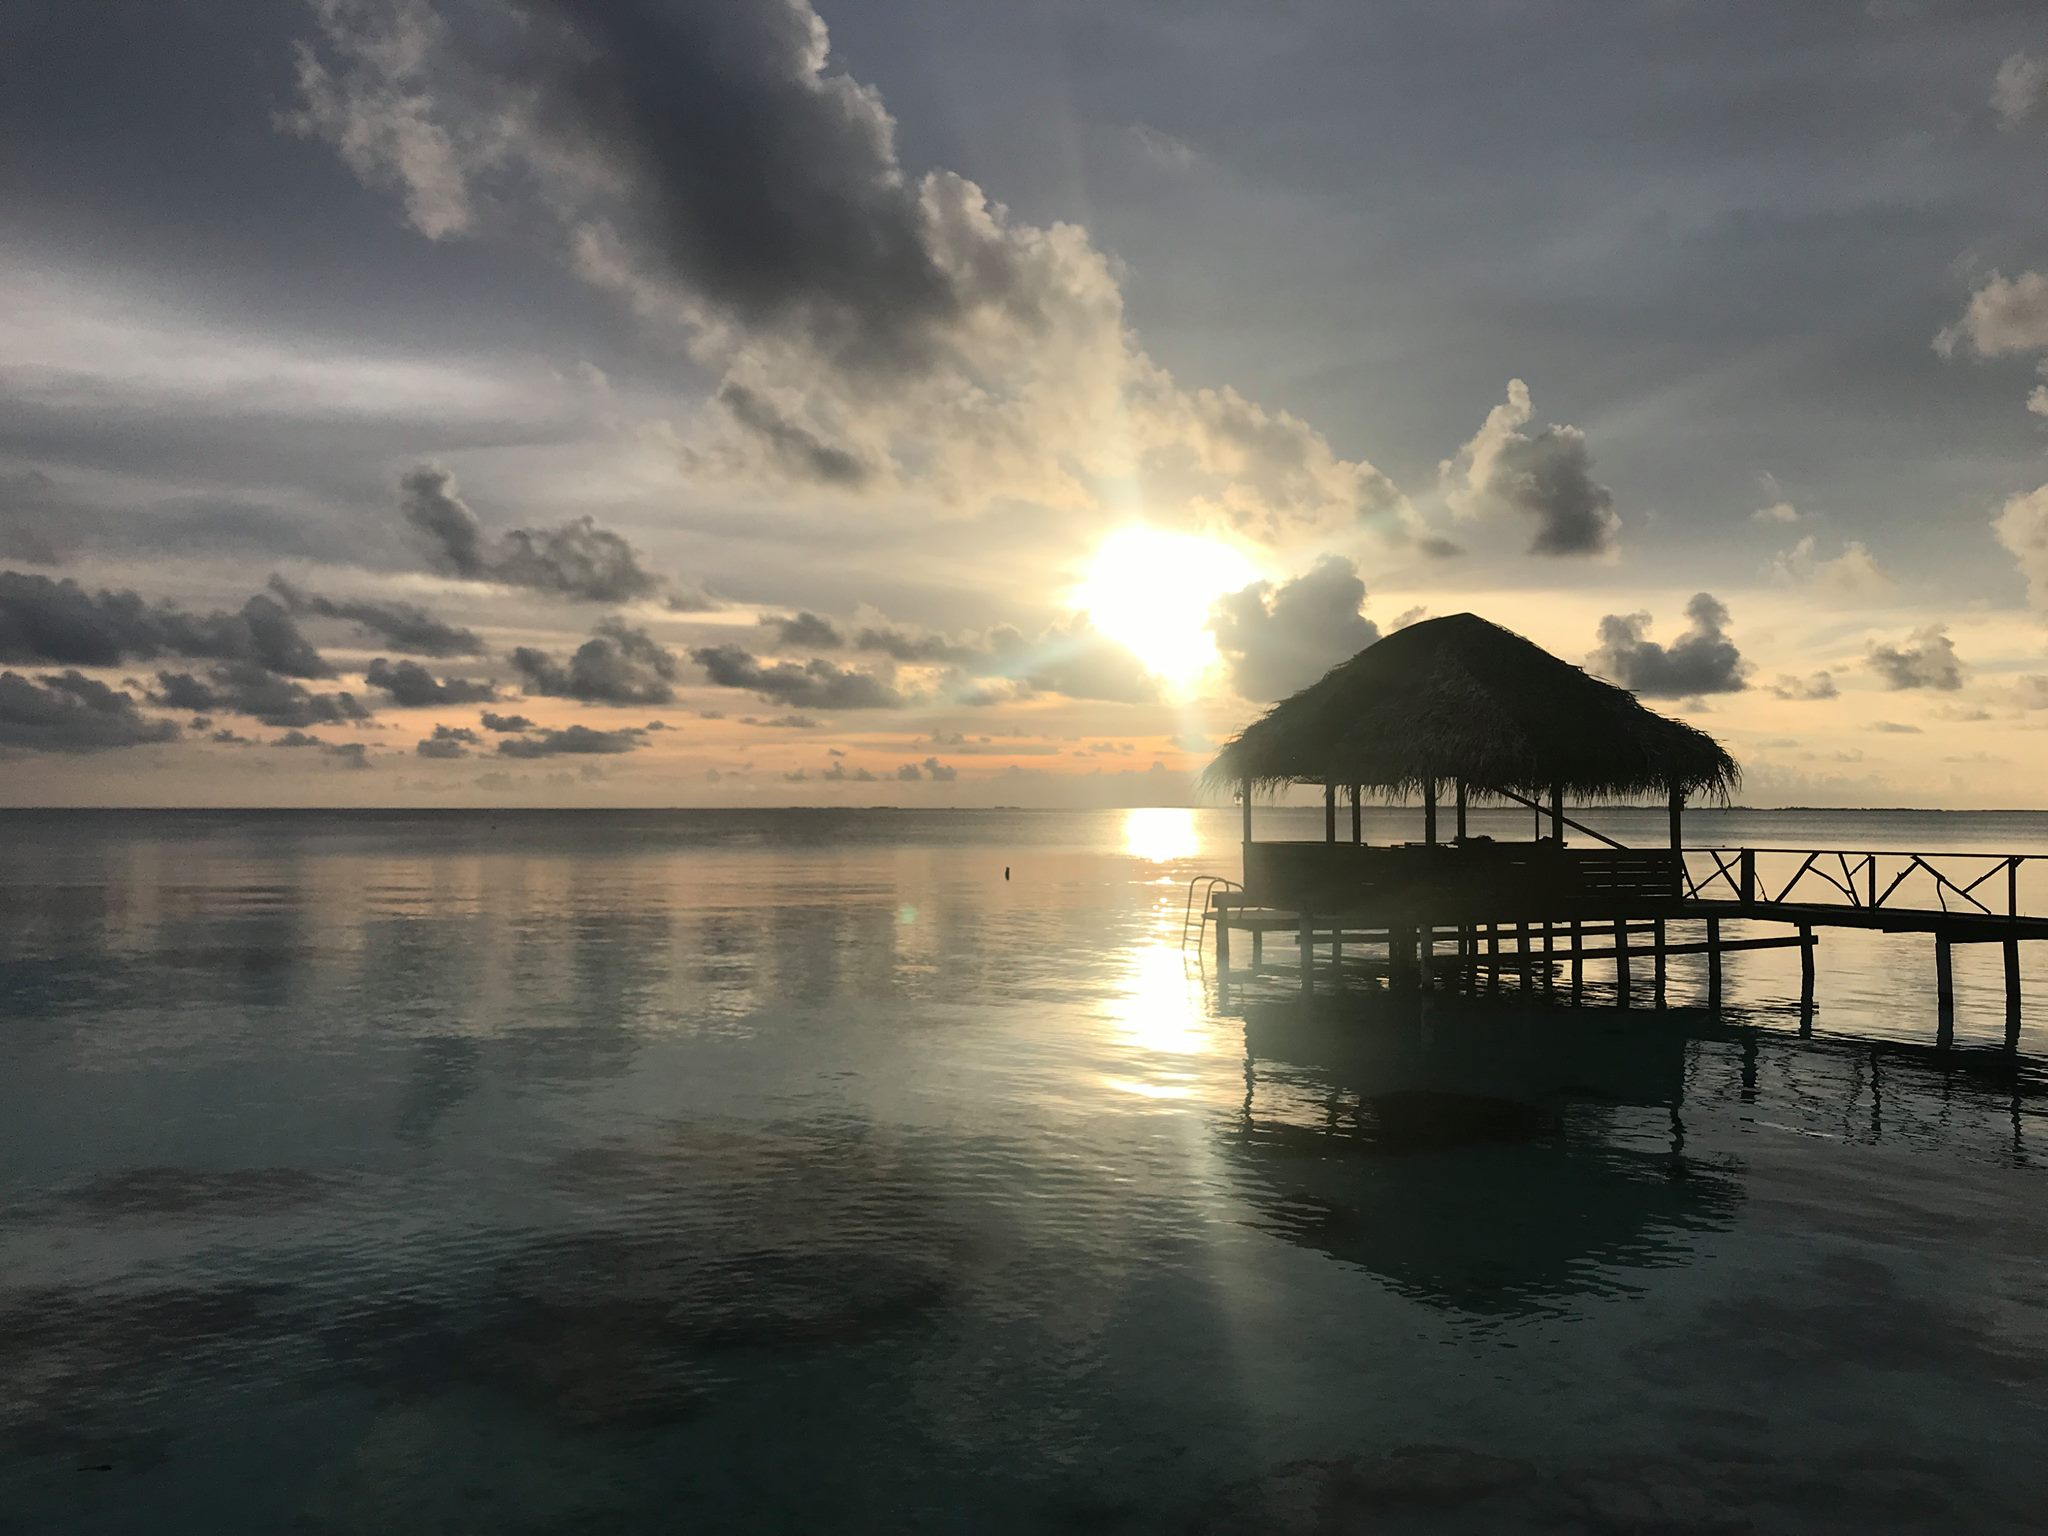 https://tahititourisme.nz/wp-content/uploads/2017/08/vuecouchedesoleil.jpg